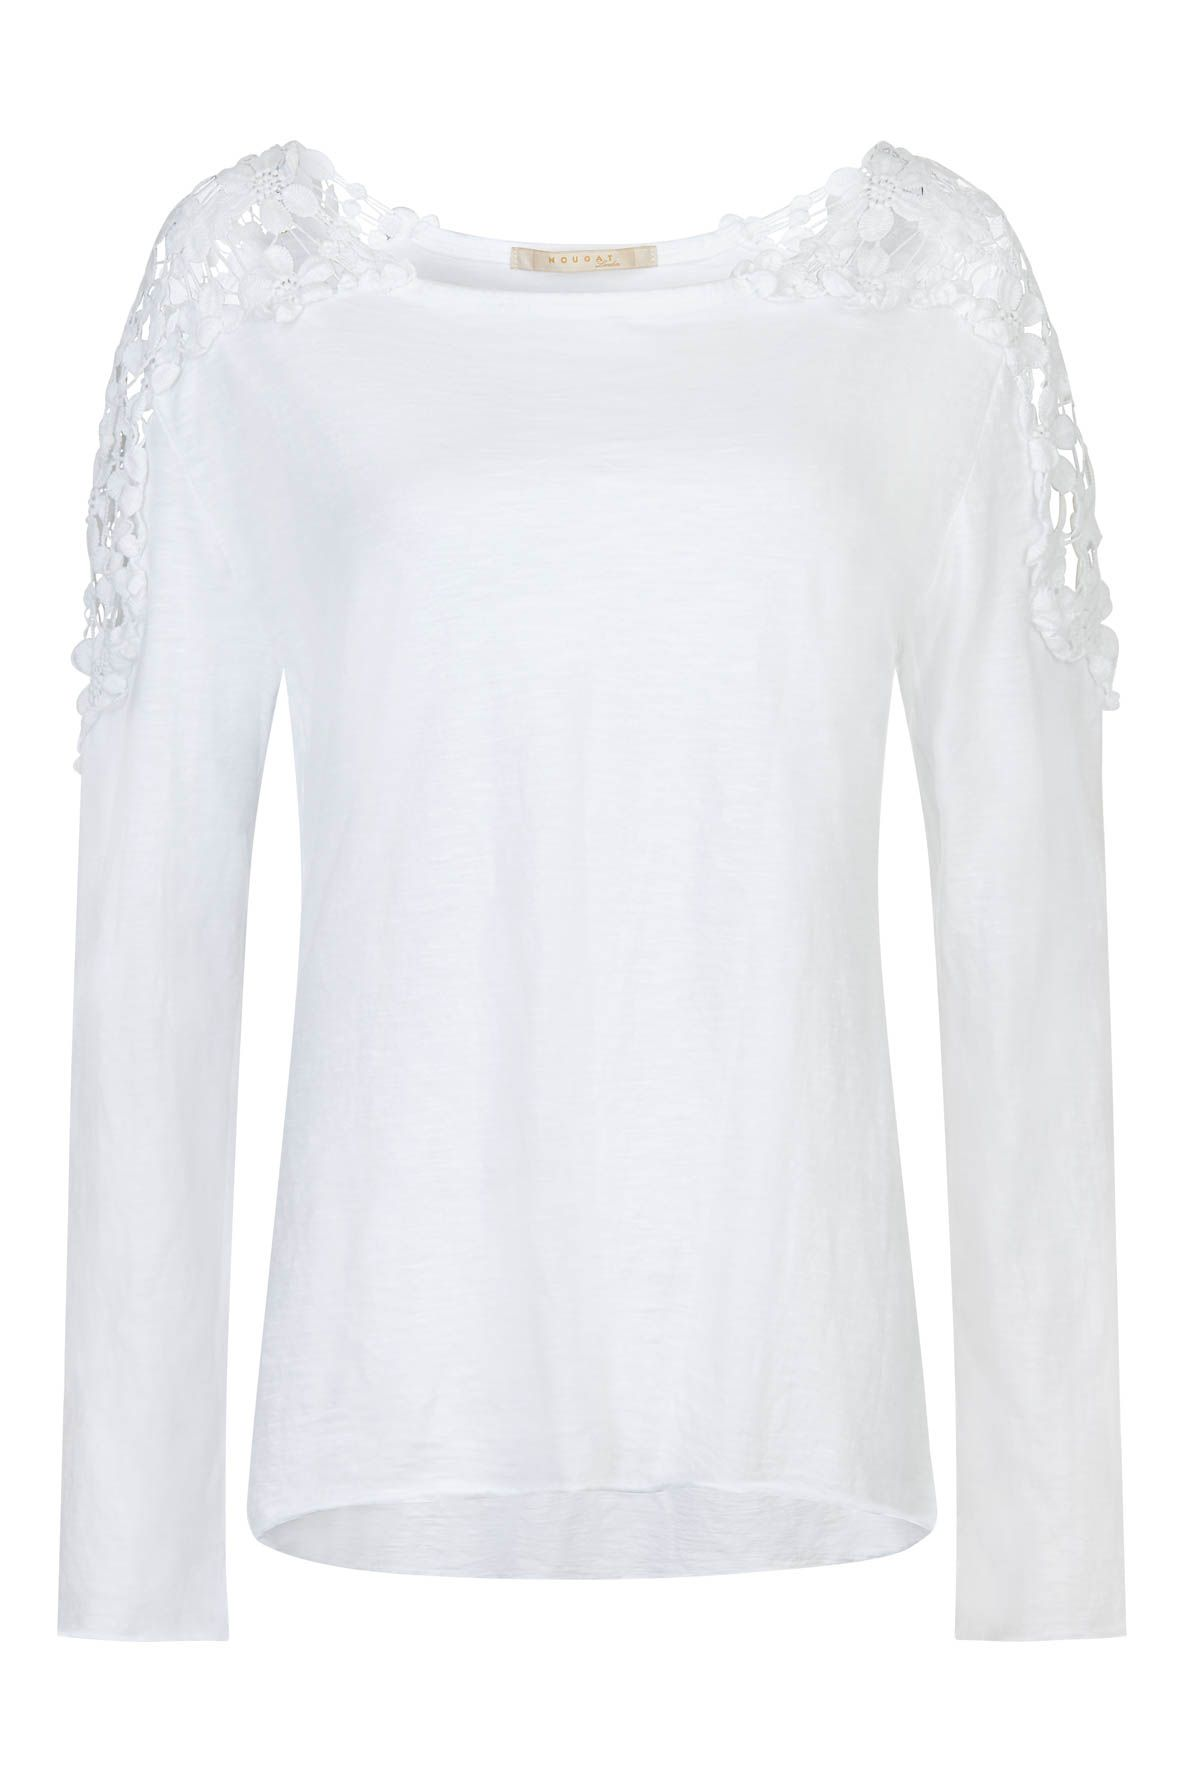 Nougat London Tuberose Crochet Top, White